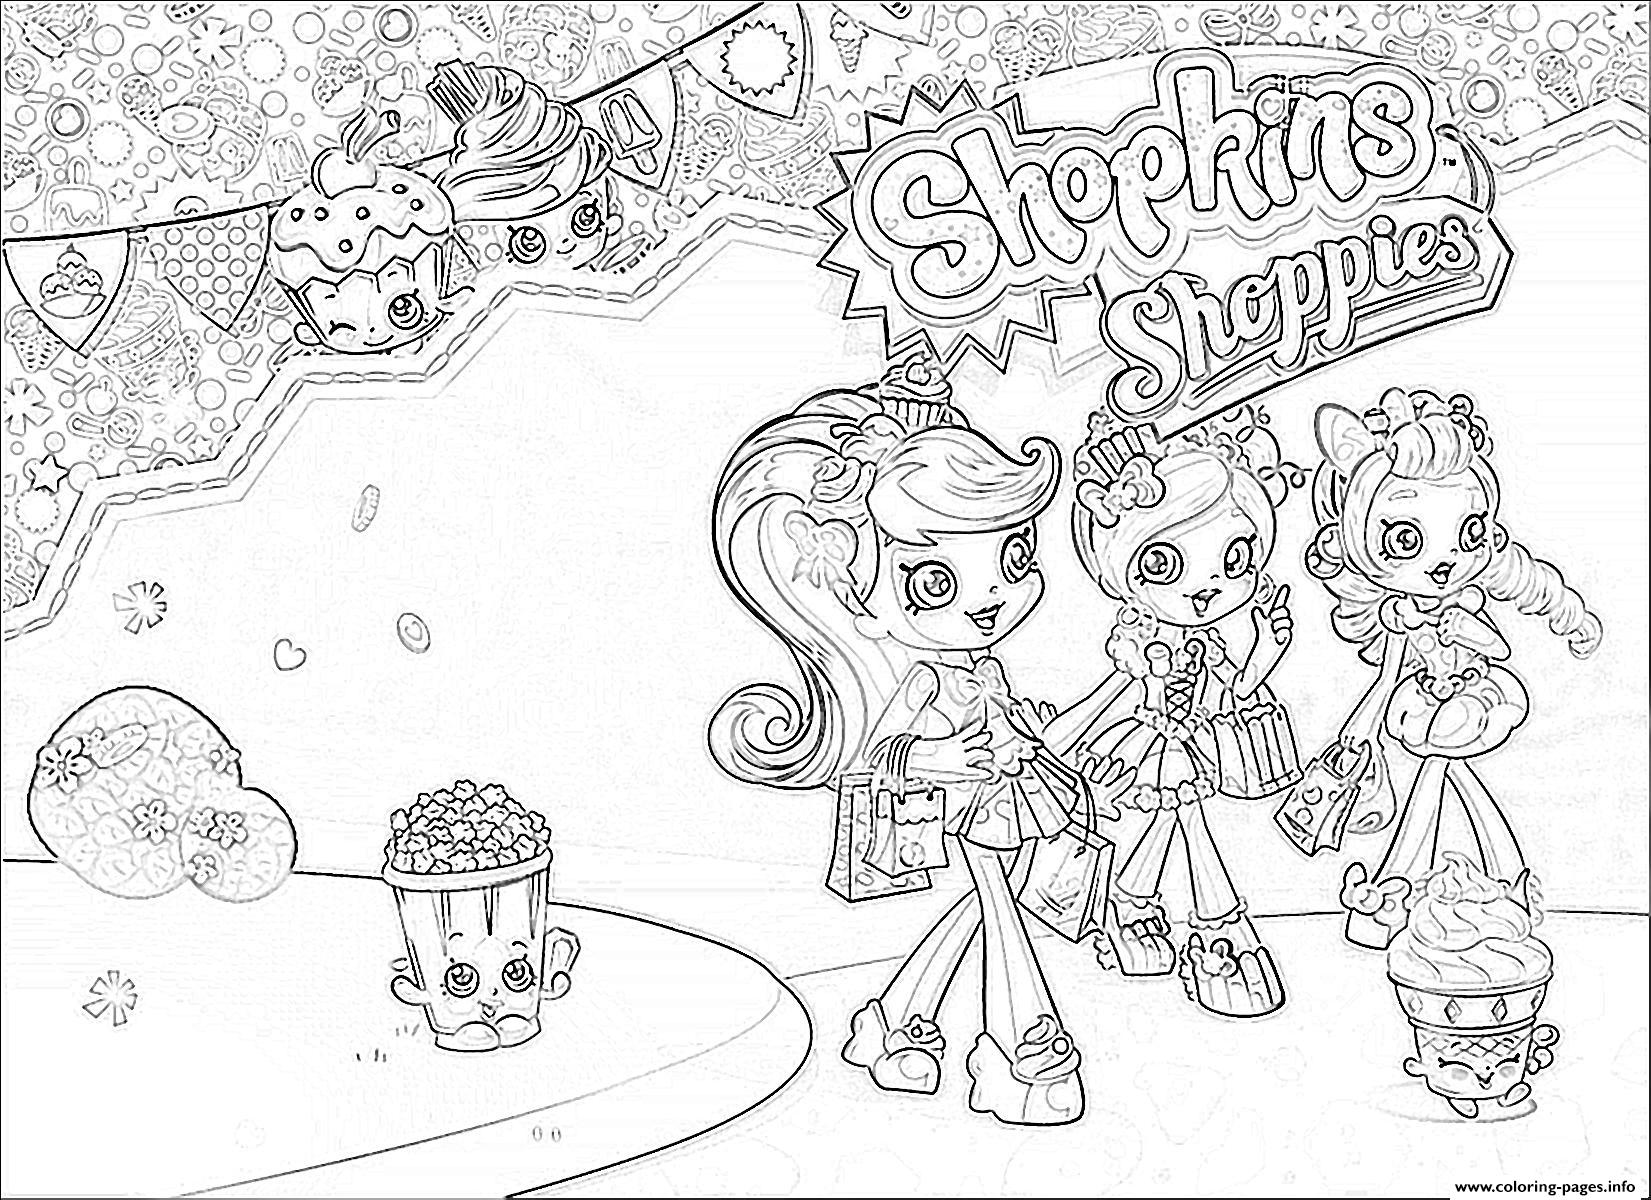 print shopkins shoppies girls coloring pages free printable